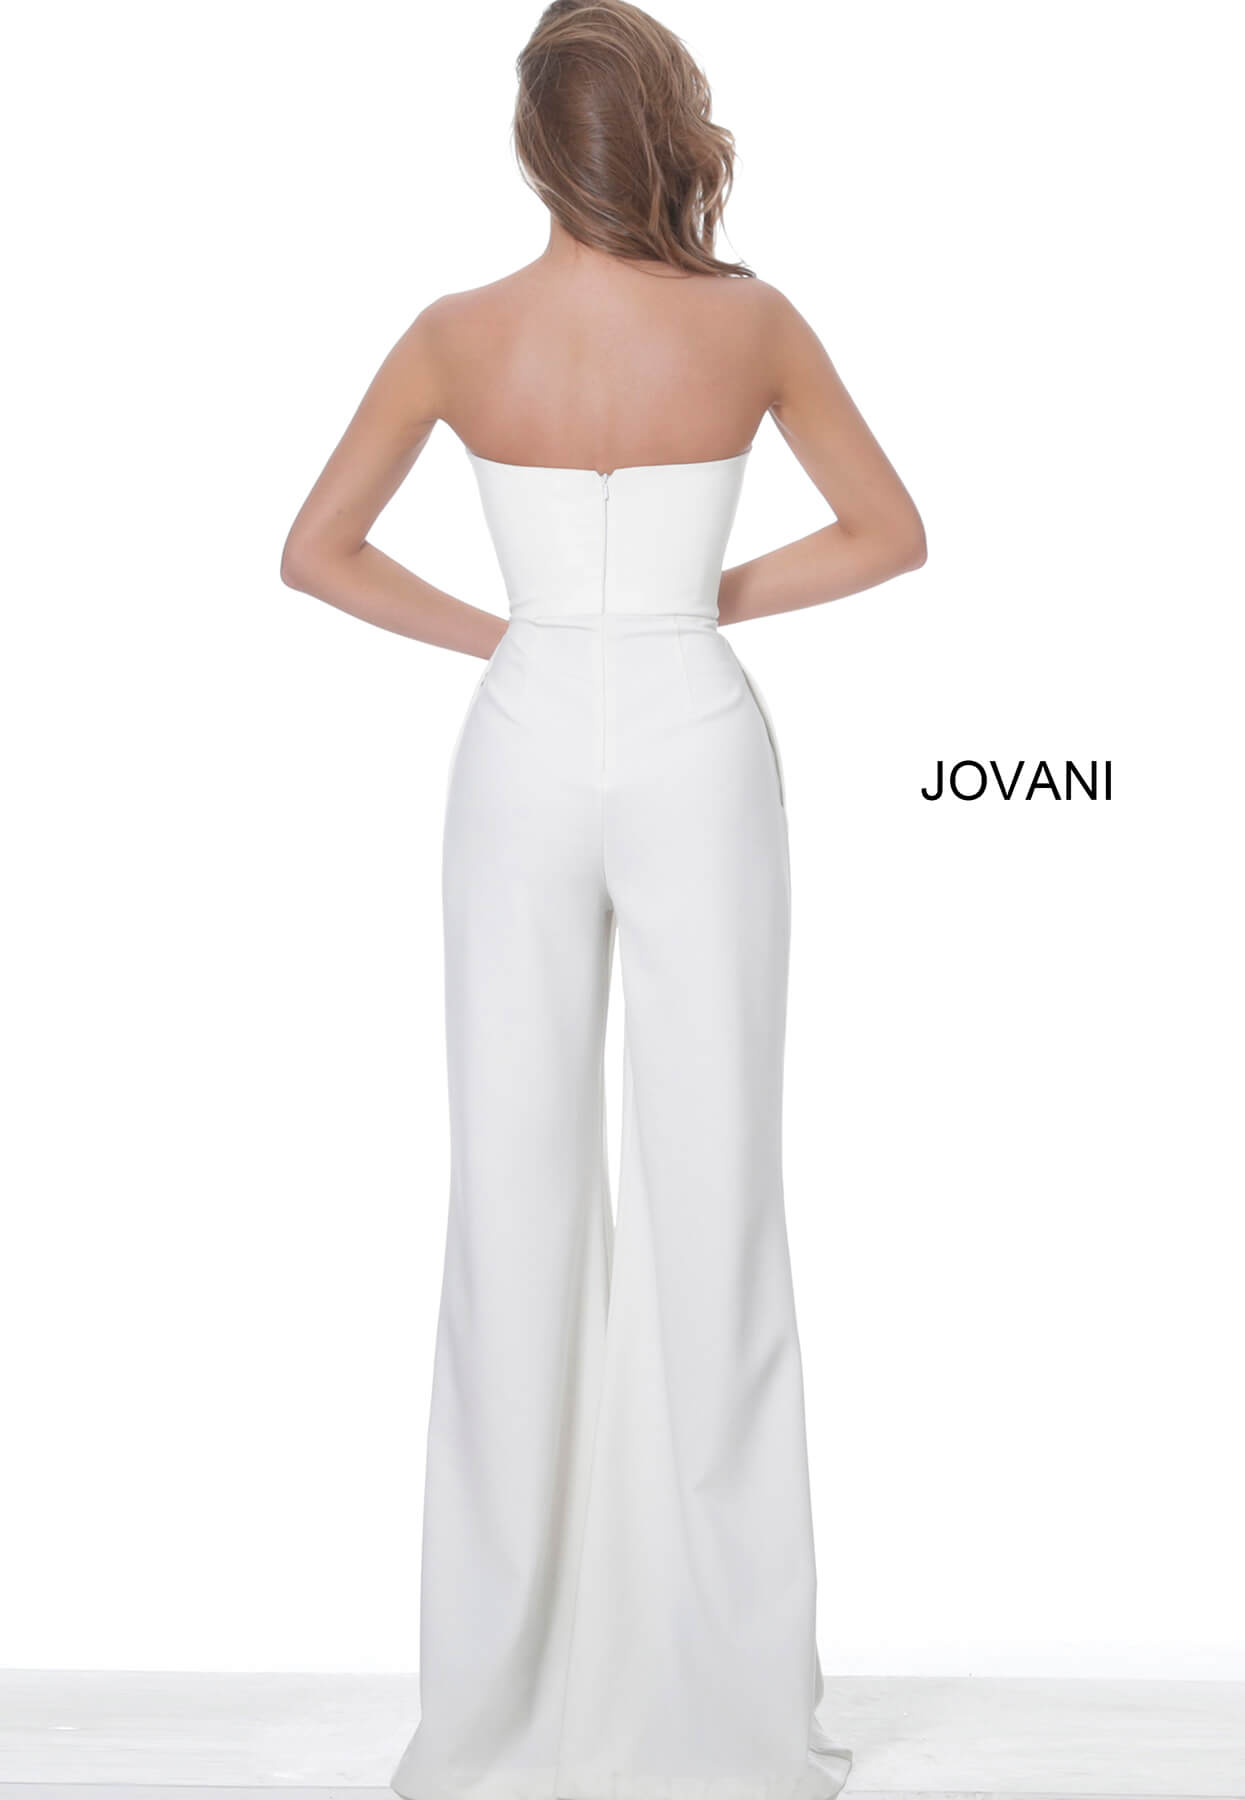 Strapless white evening jumpsuit Jovani 03828 on mobile 0